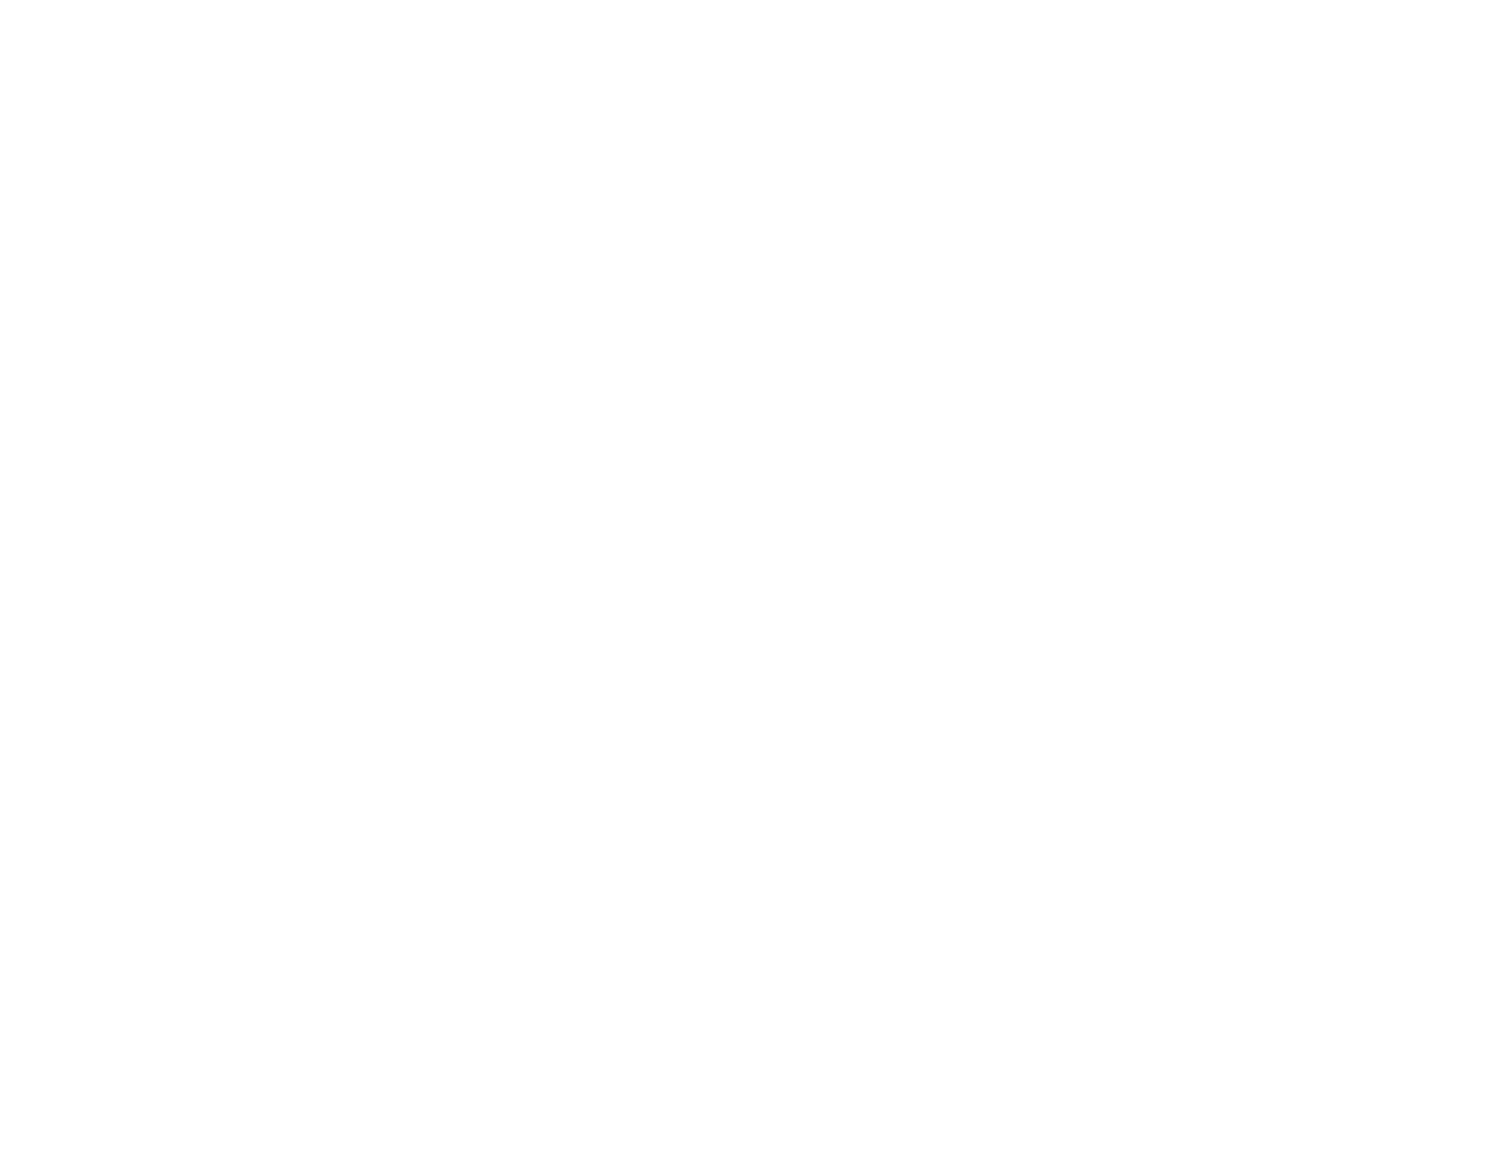 SRI Resources